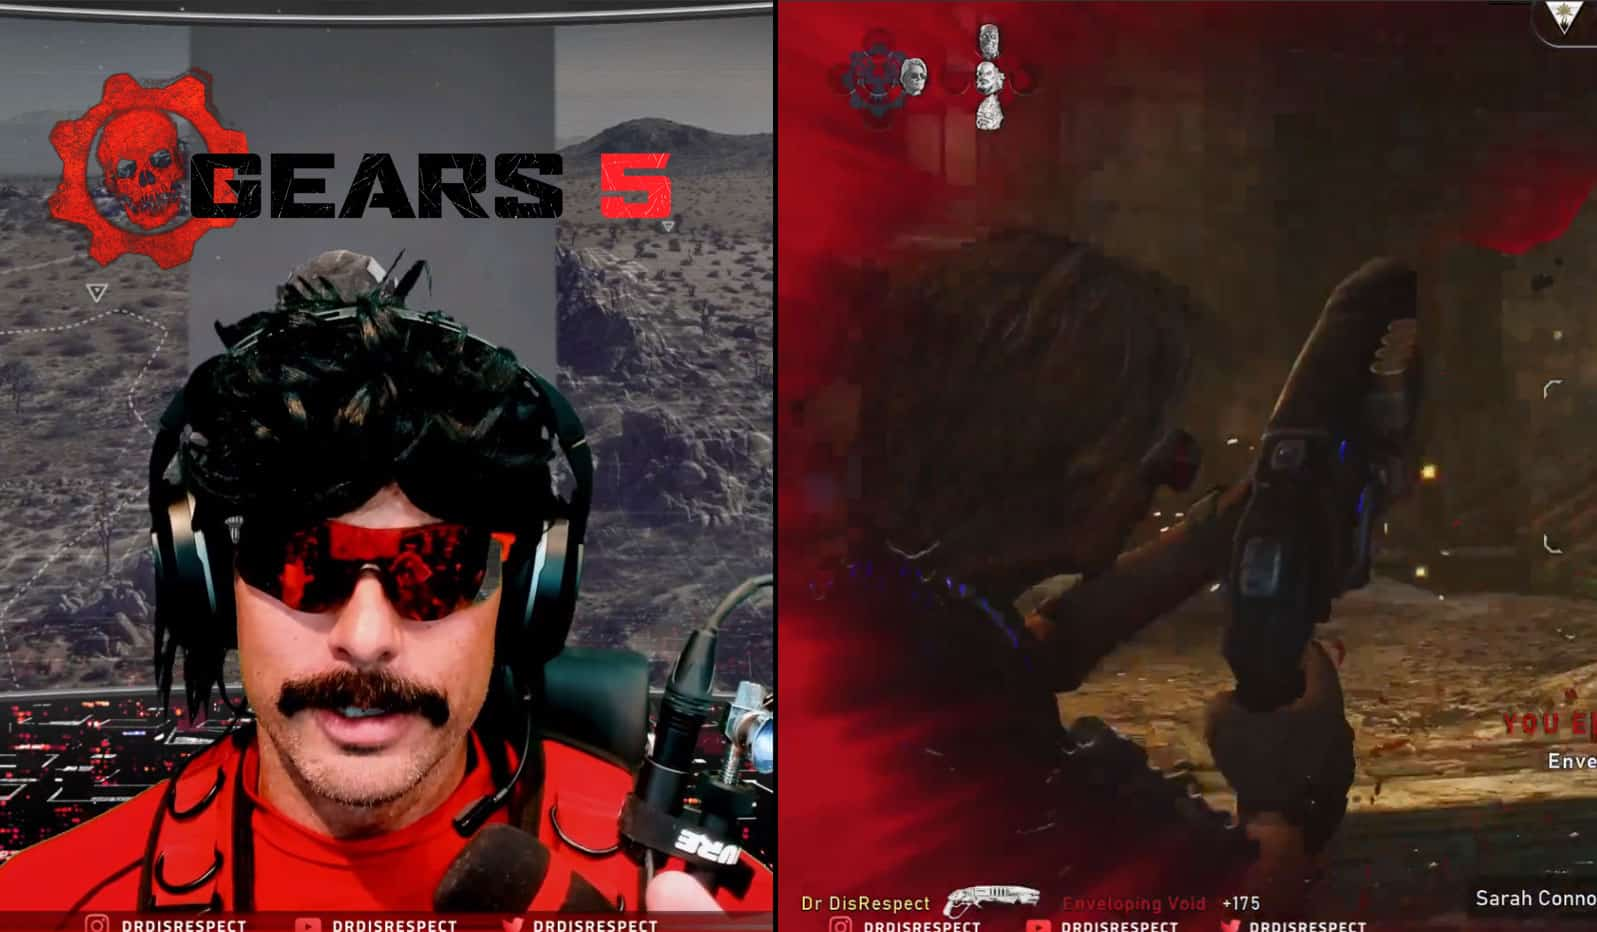 Dr Disrespect Makes Gears 5 Look Easy. Common Baby!